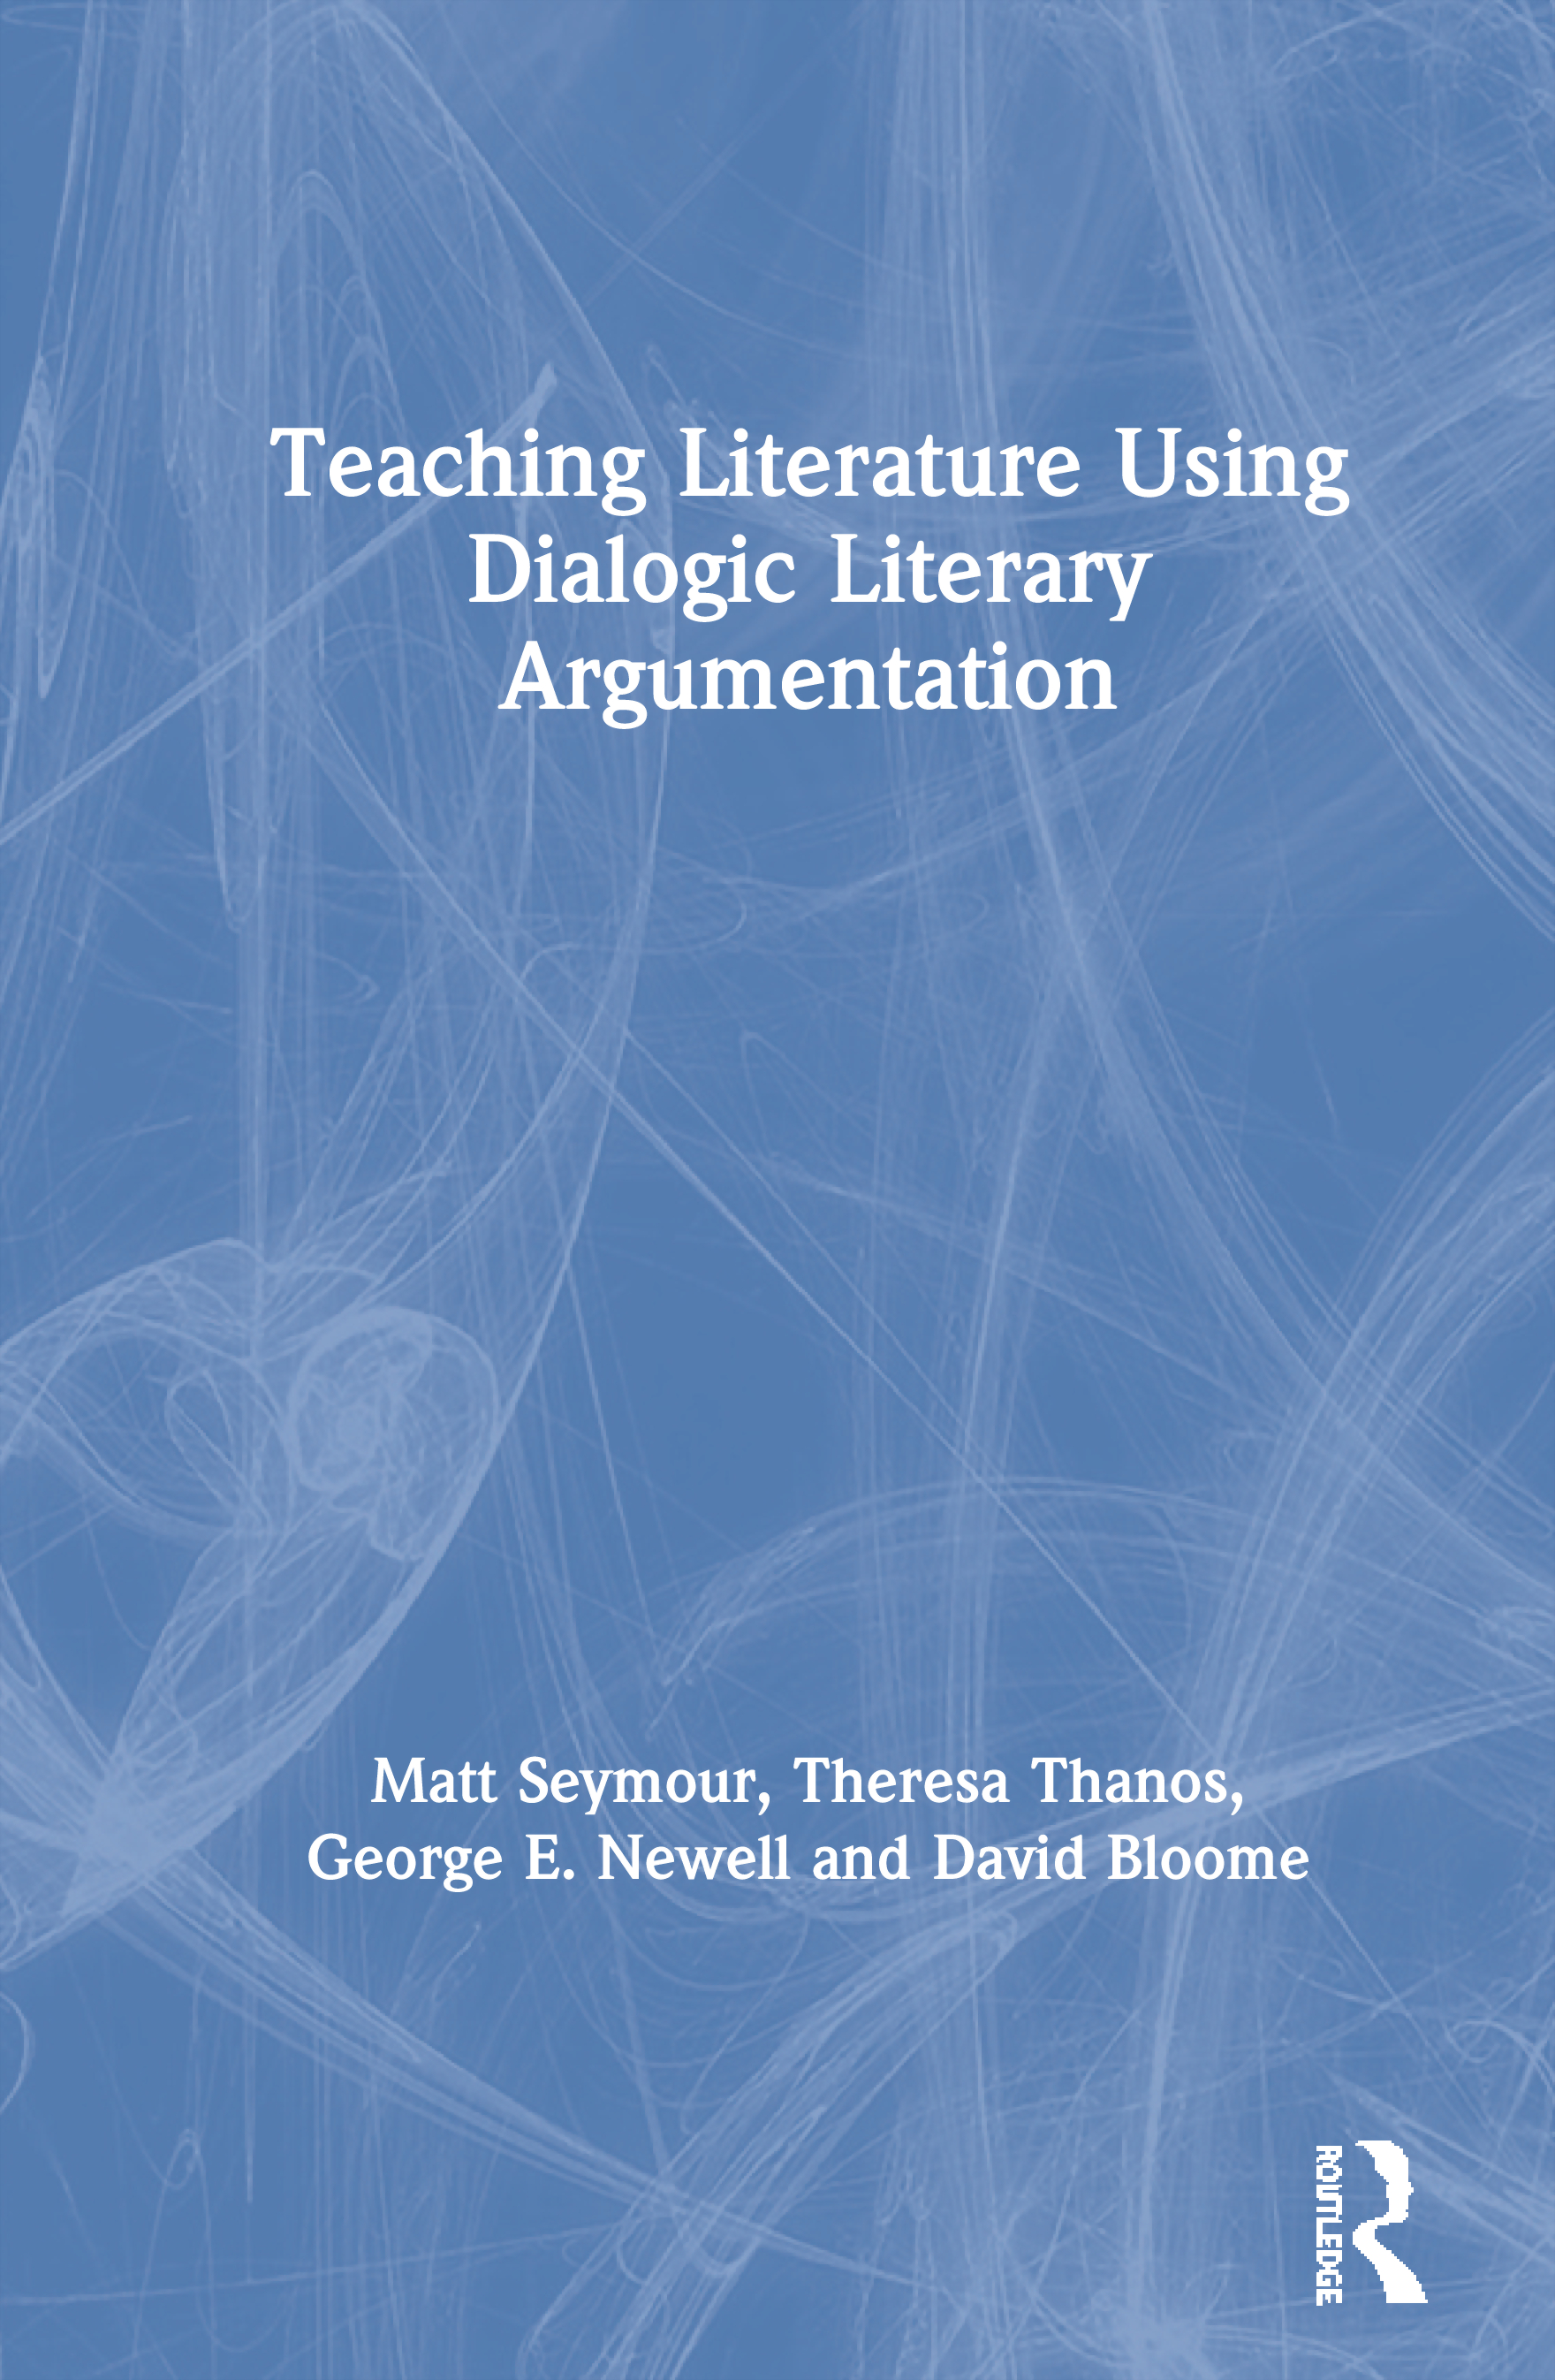 Teaching Literature Using Dialogic Literary Argumentation: 1st Edition (Paperback) book cover